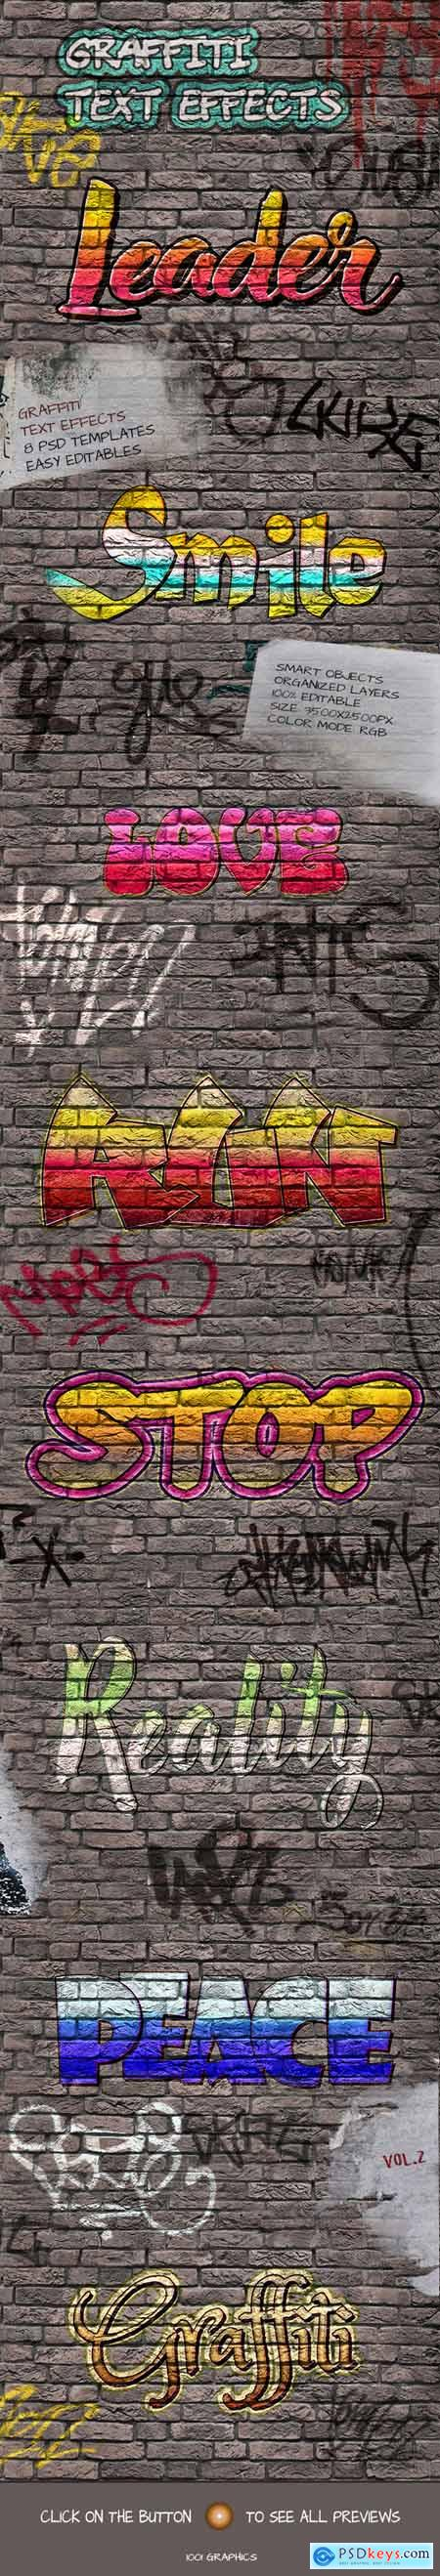 8 Graffiti Text Effects - 8 PSD Templates Vol.2 25033075